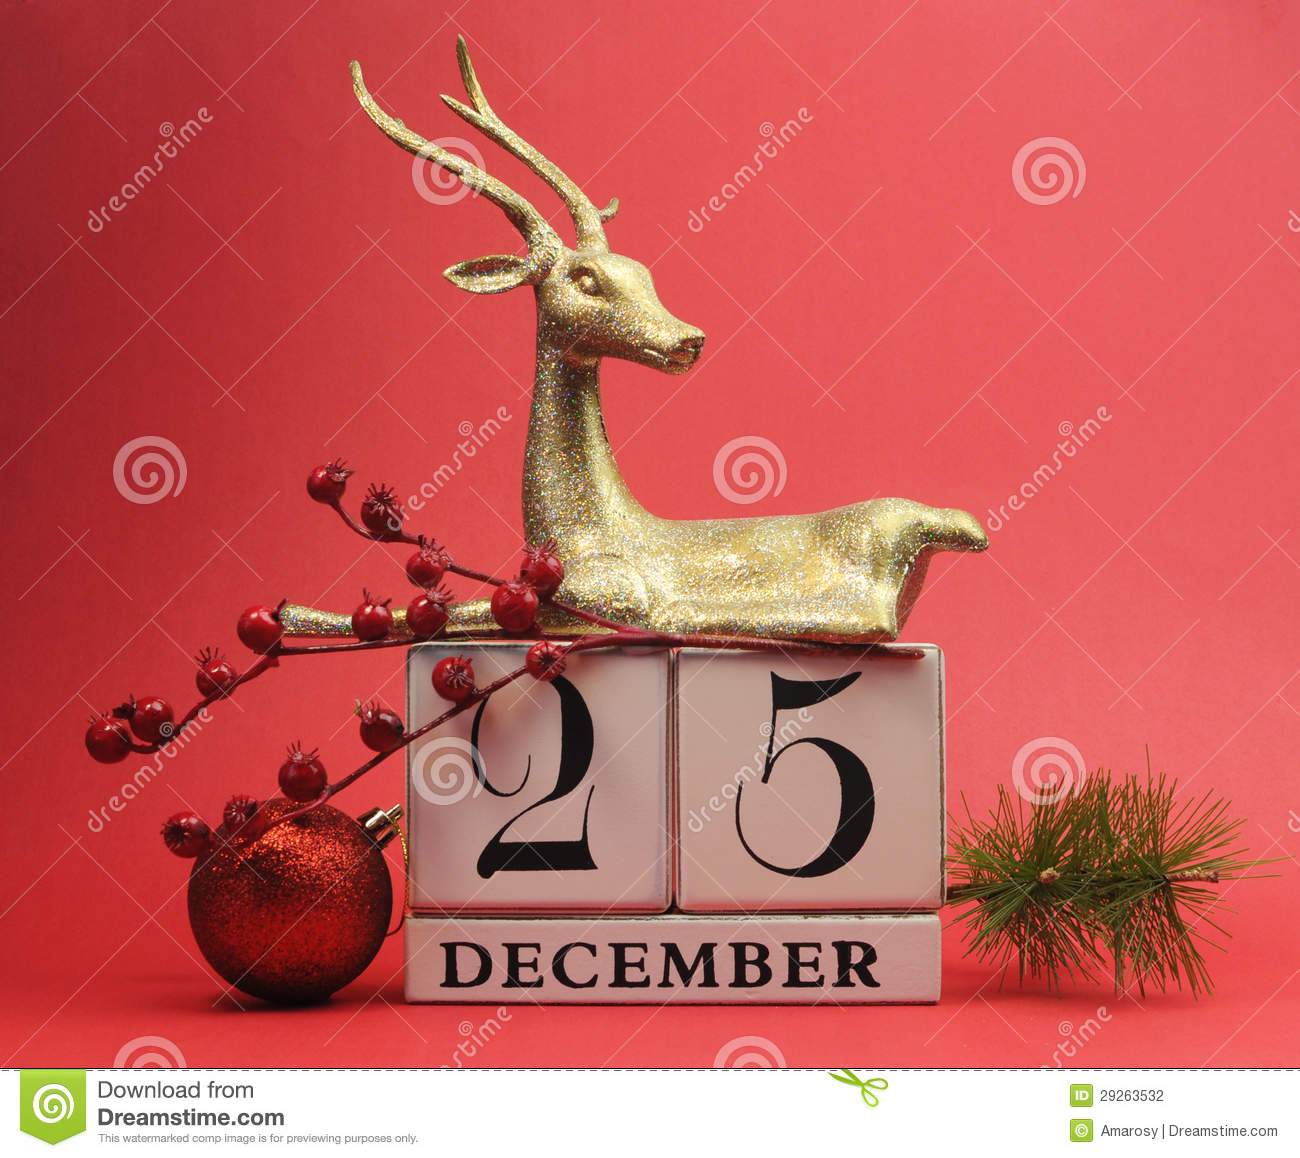 red theme save the date calendar for christmas day december 25